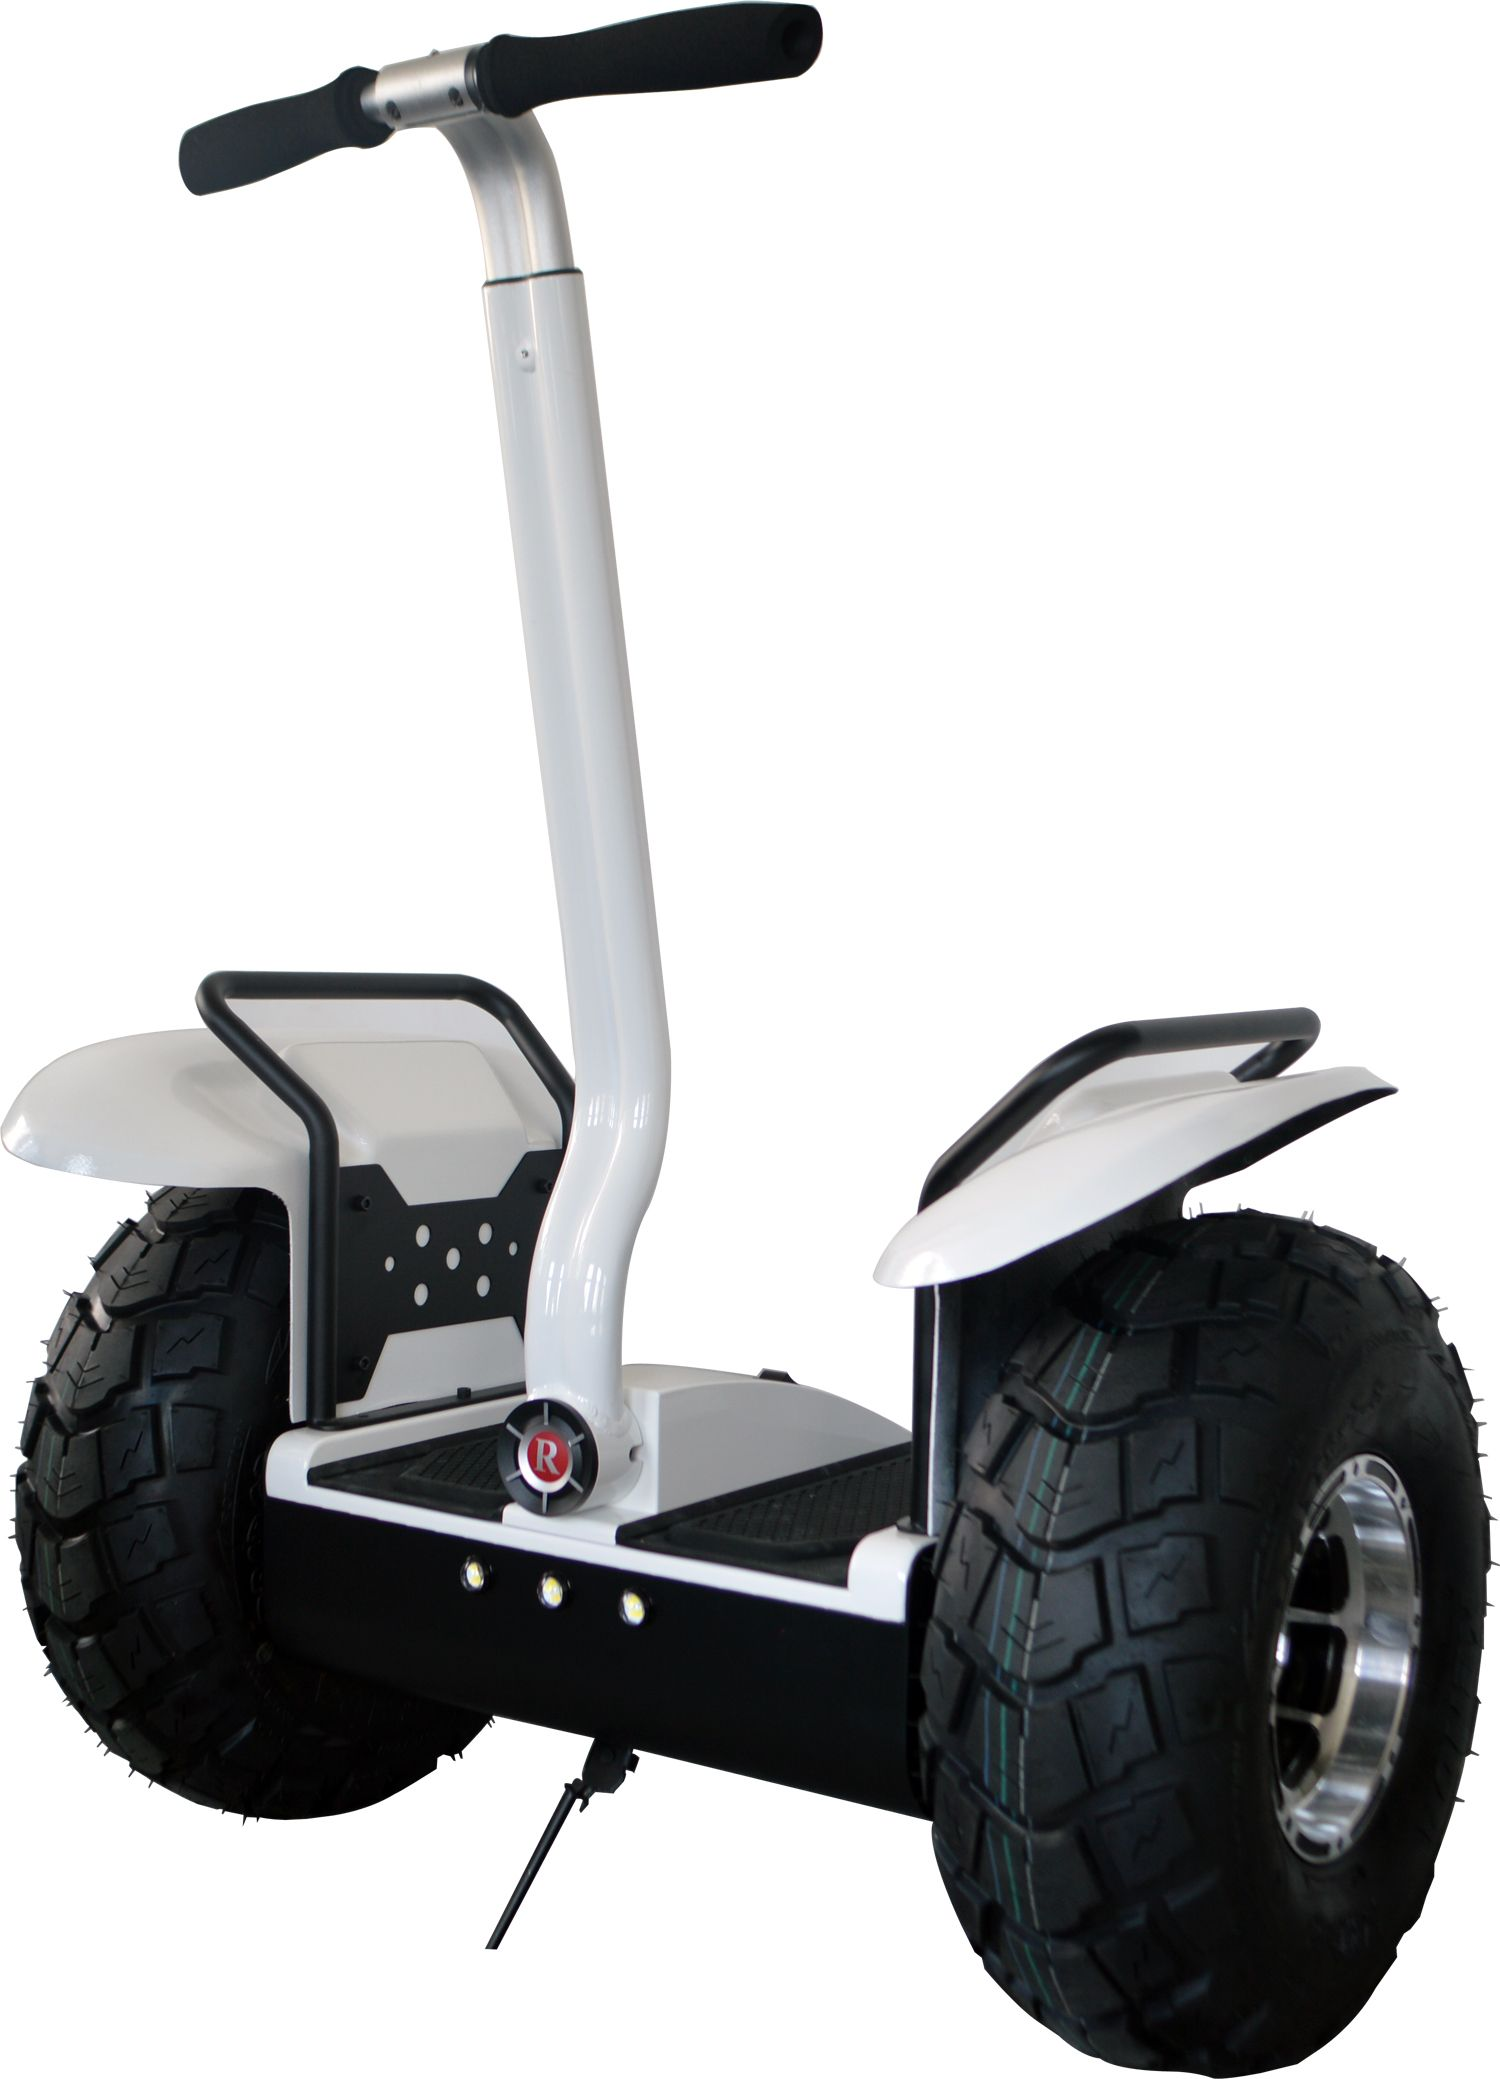 White Segway Style Segway For Sale Segway Electric Scooter For Kids